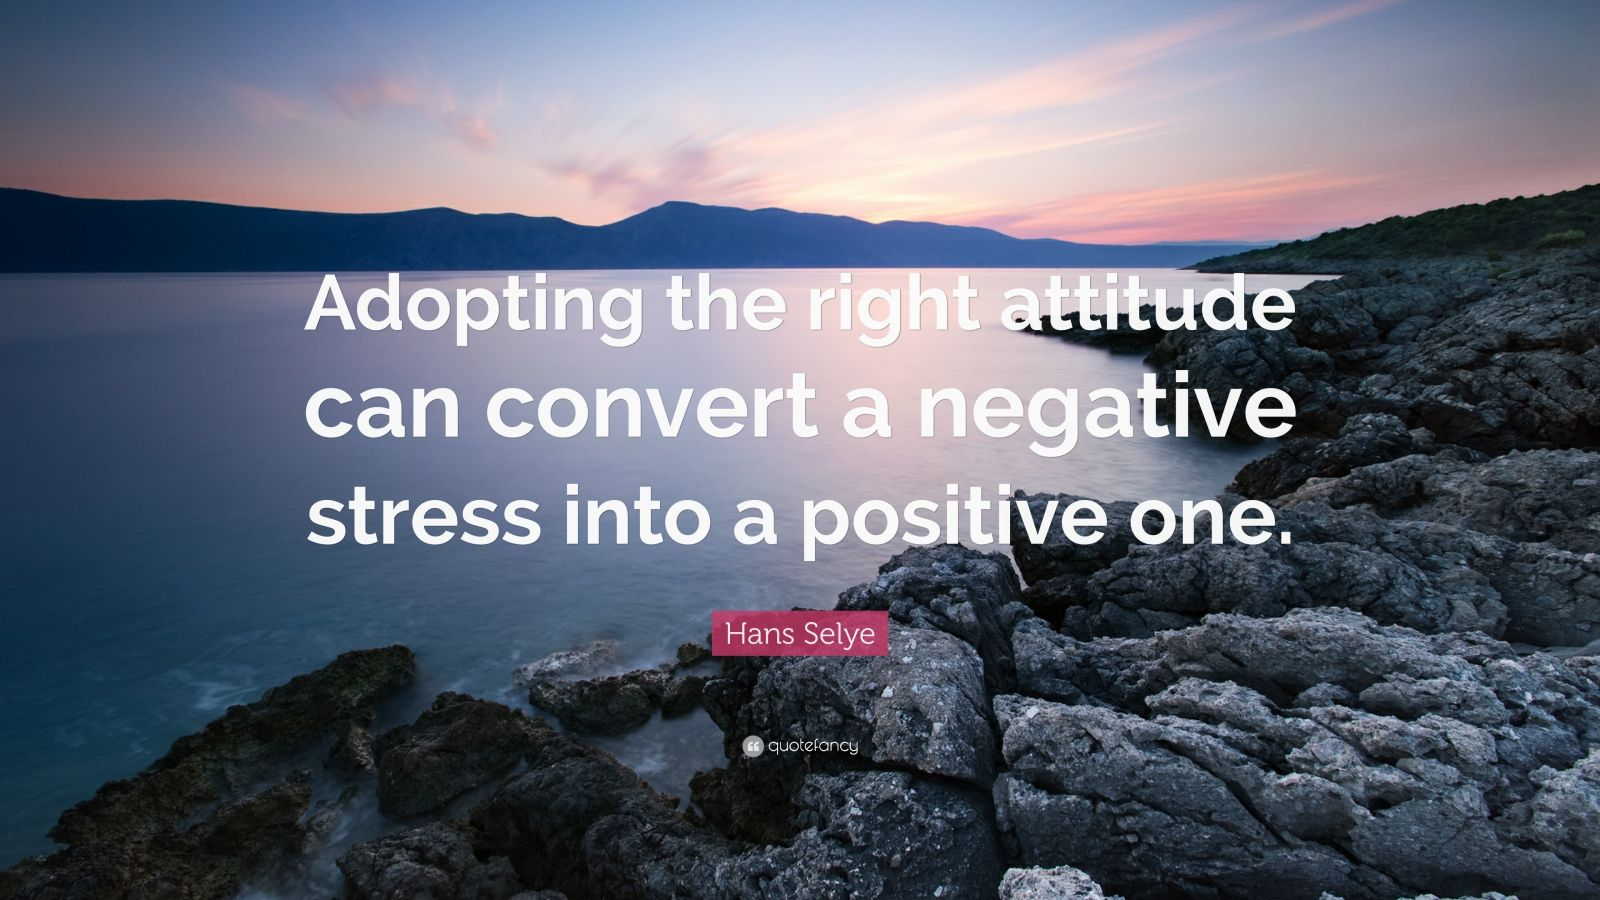 positive quotes 53  positive quotes adopting the right attitude can convert a negative stress into a positive